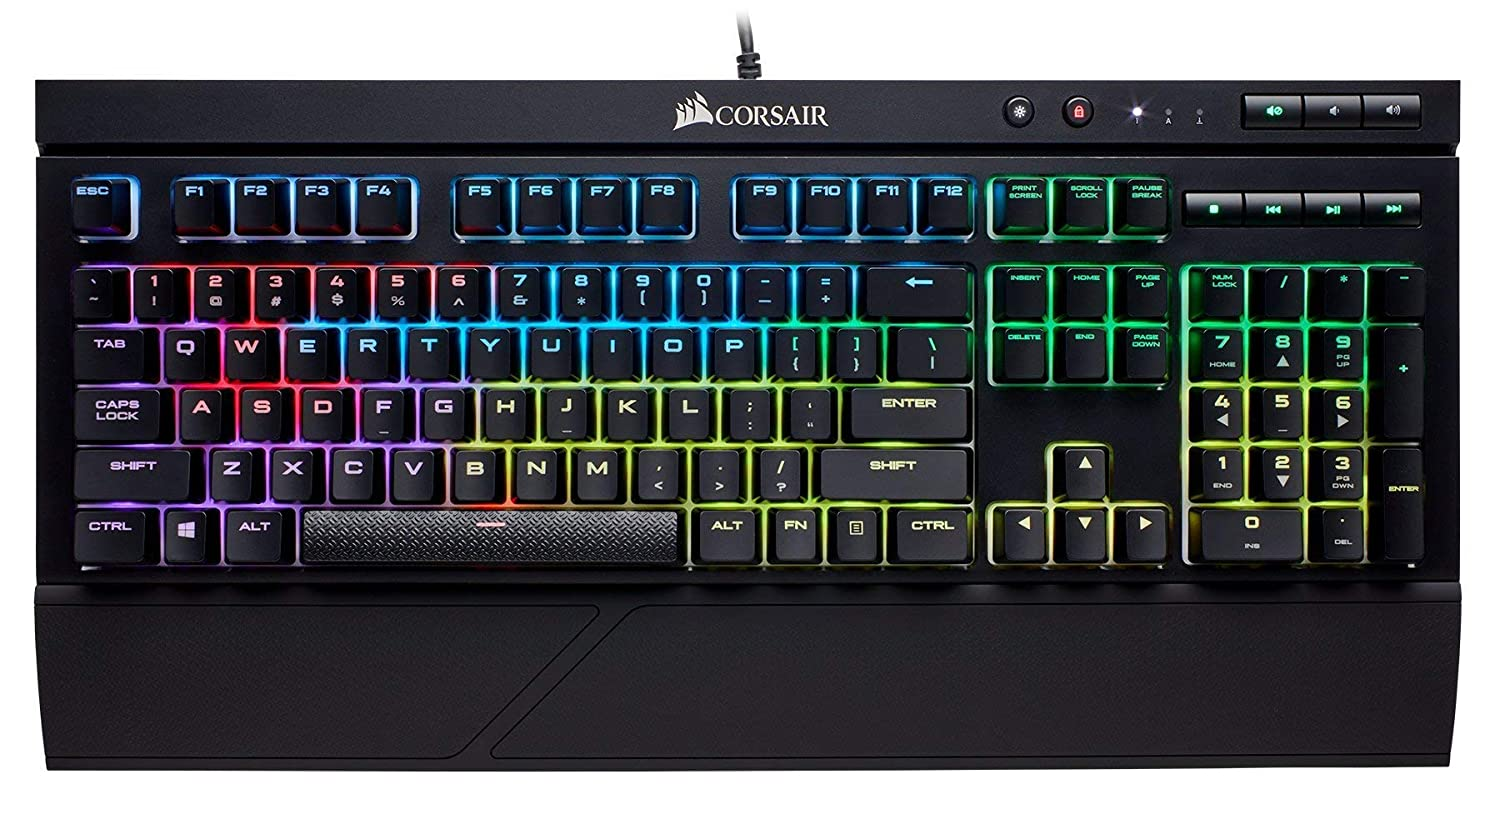 CORSAIR K68 RGB Mechanical Gaming Keyboard Dust and Spill Resistant Linear /& Quiet Cherry MX Red Backlit RGB LED Renewed